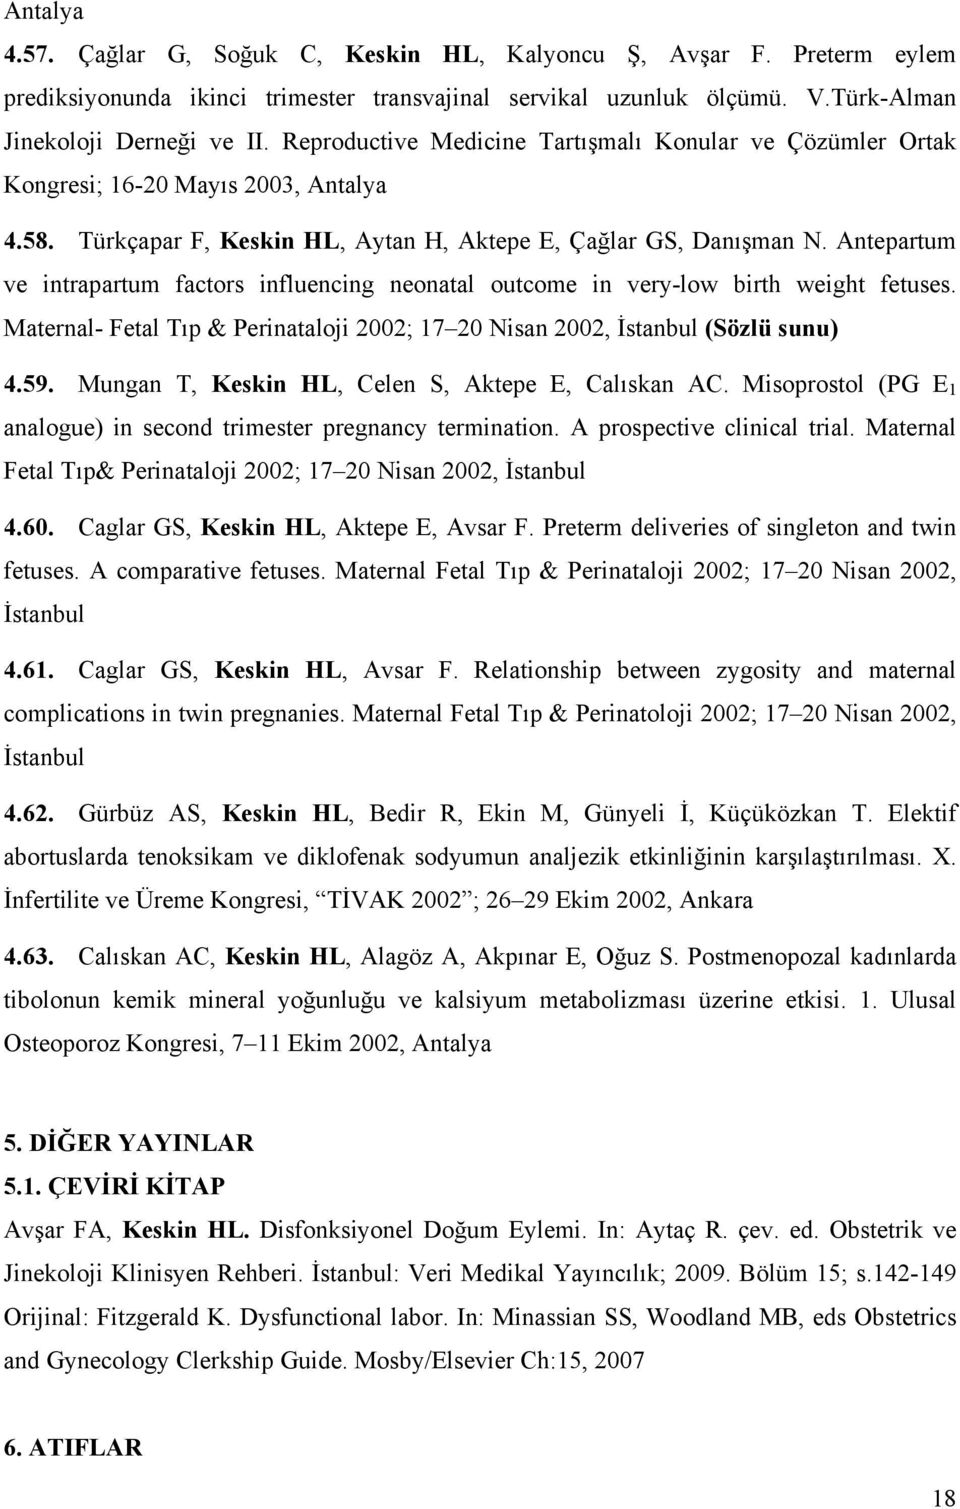 Antepartum ve intrapartum factors influencing neonatal outcome in very-low birth weight fetuses. Maternal- Fetal Tıp & Perinataloji 2002; 17 20 Nisan 2002, İstanbul (Sözlü sunu) 4.59.